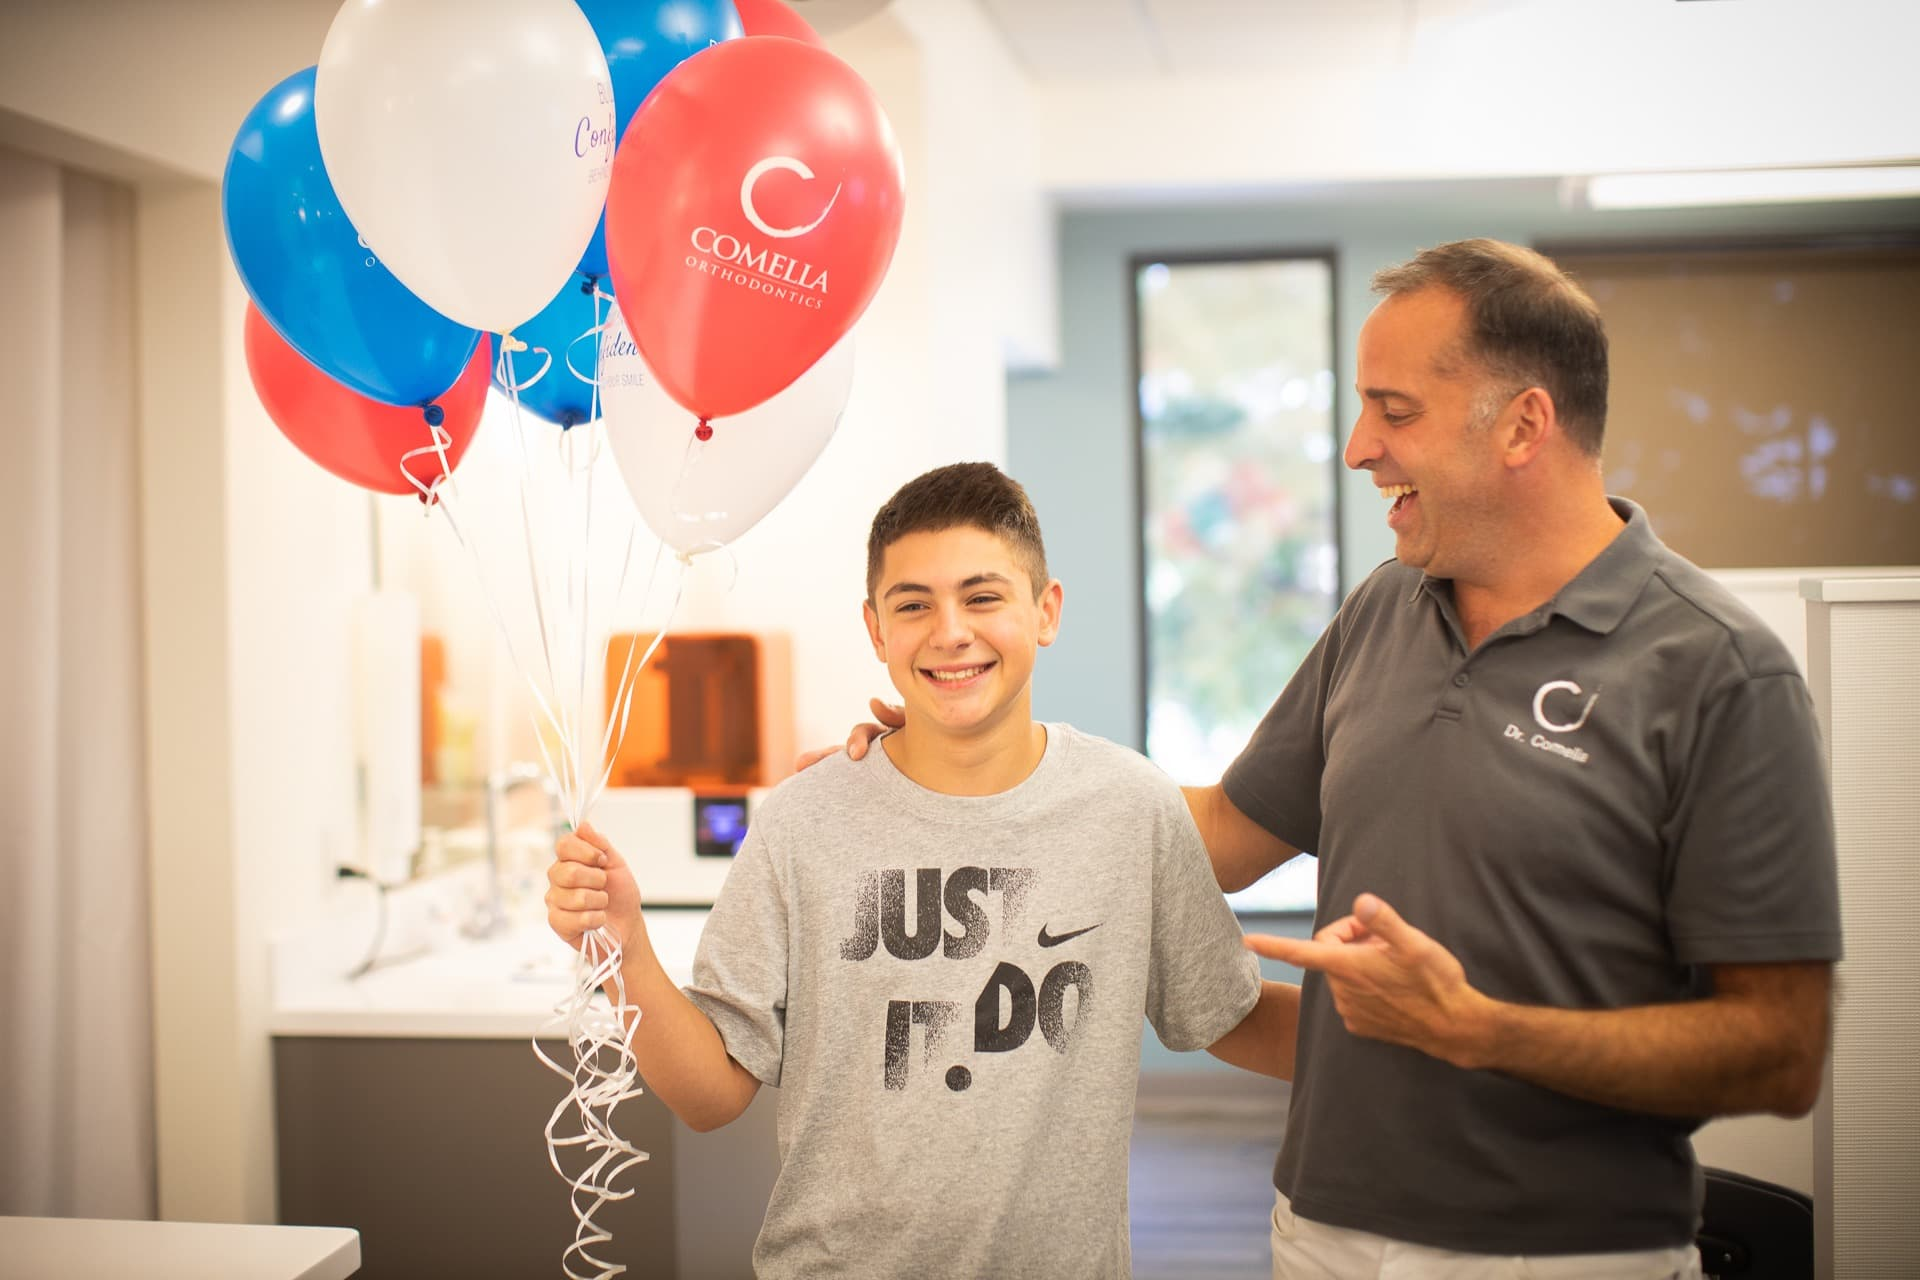 Comella Orthodontics Rochester New York Dr Comella Candids 43 - Experience MORE than Just Straightening Teeth